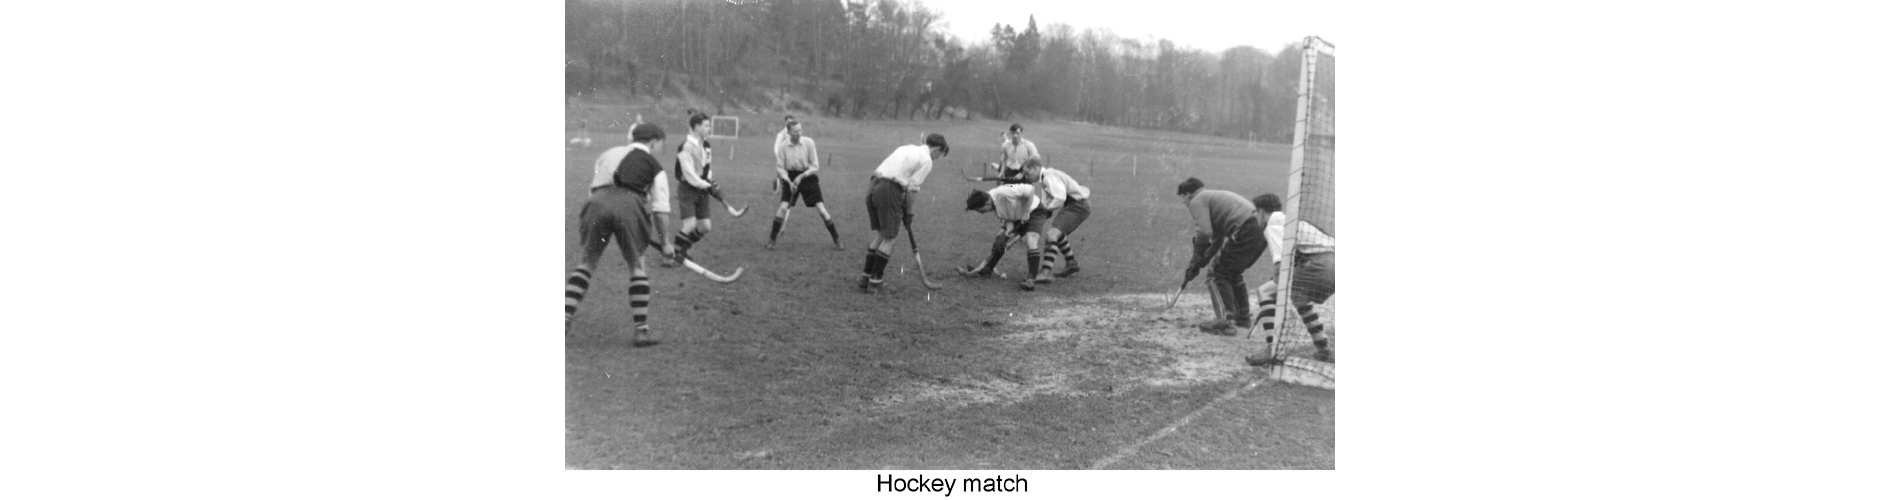 Hockey Match